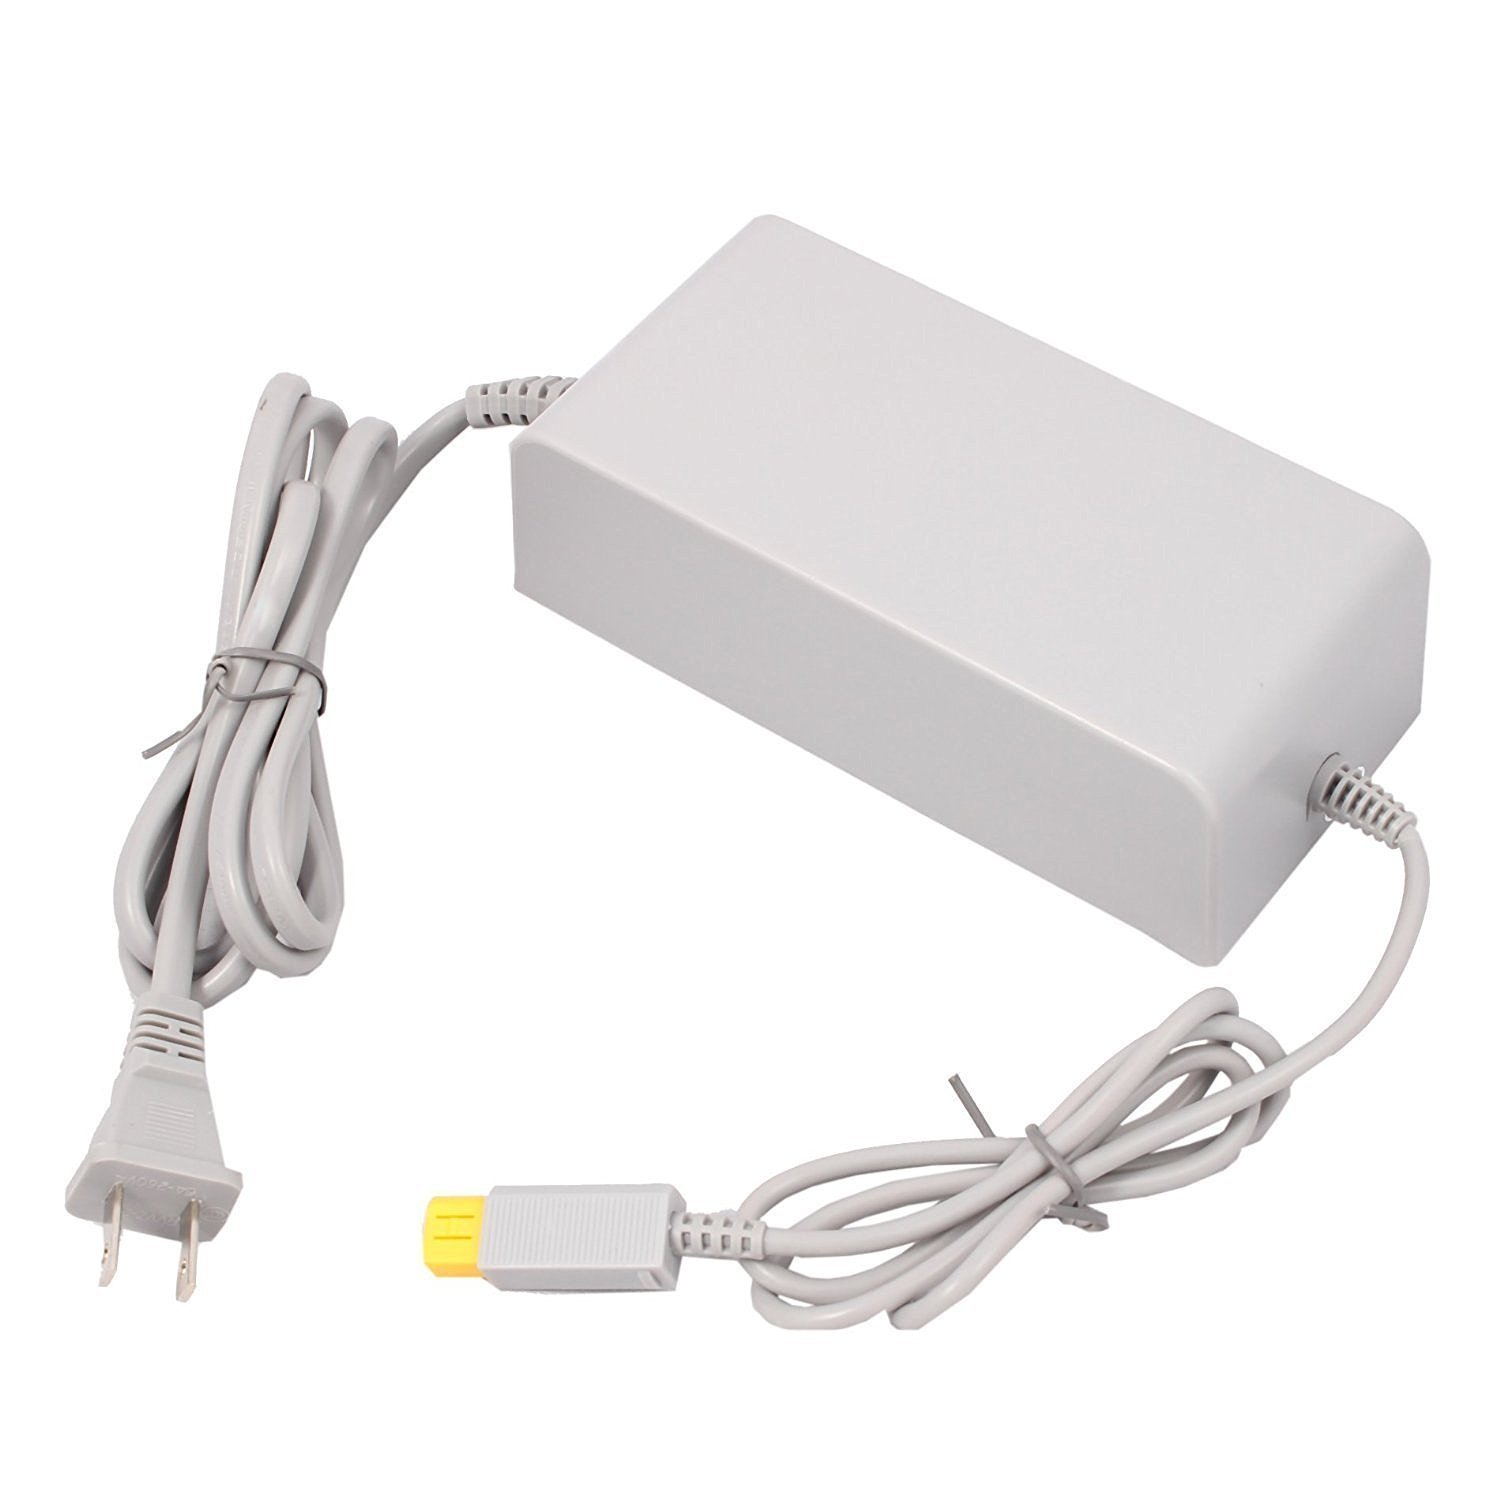 tesha Universal 100-240V Wall AC Adapter 15V 5A Power Charger Cord for Nintendo Wii U Console